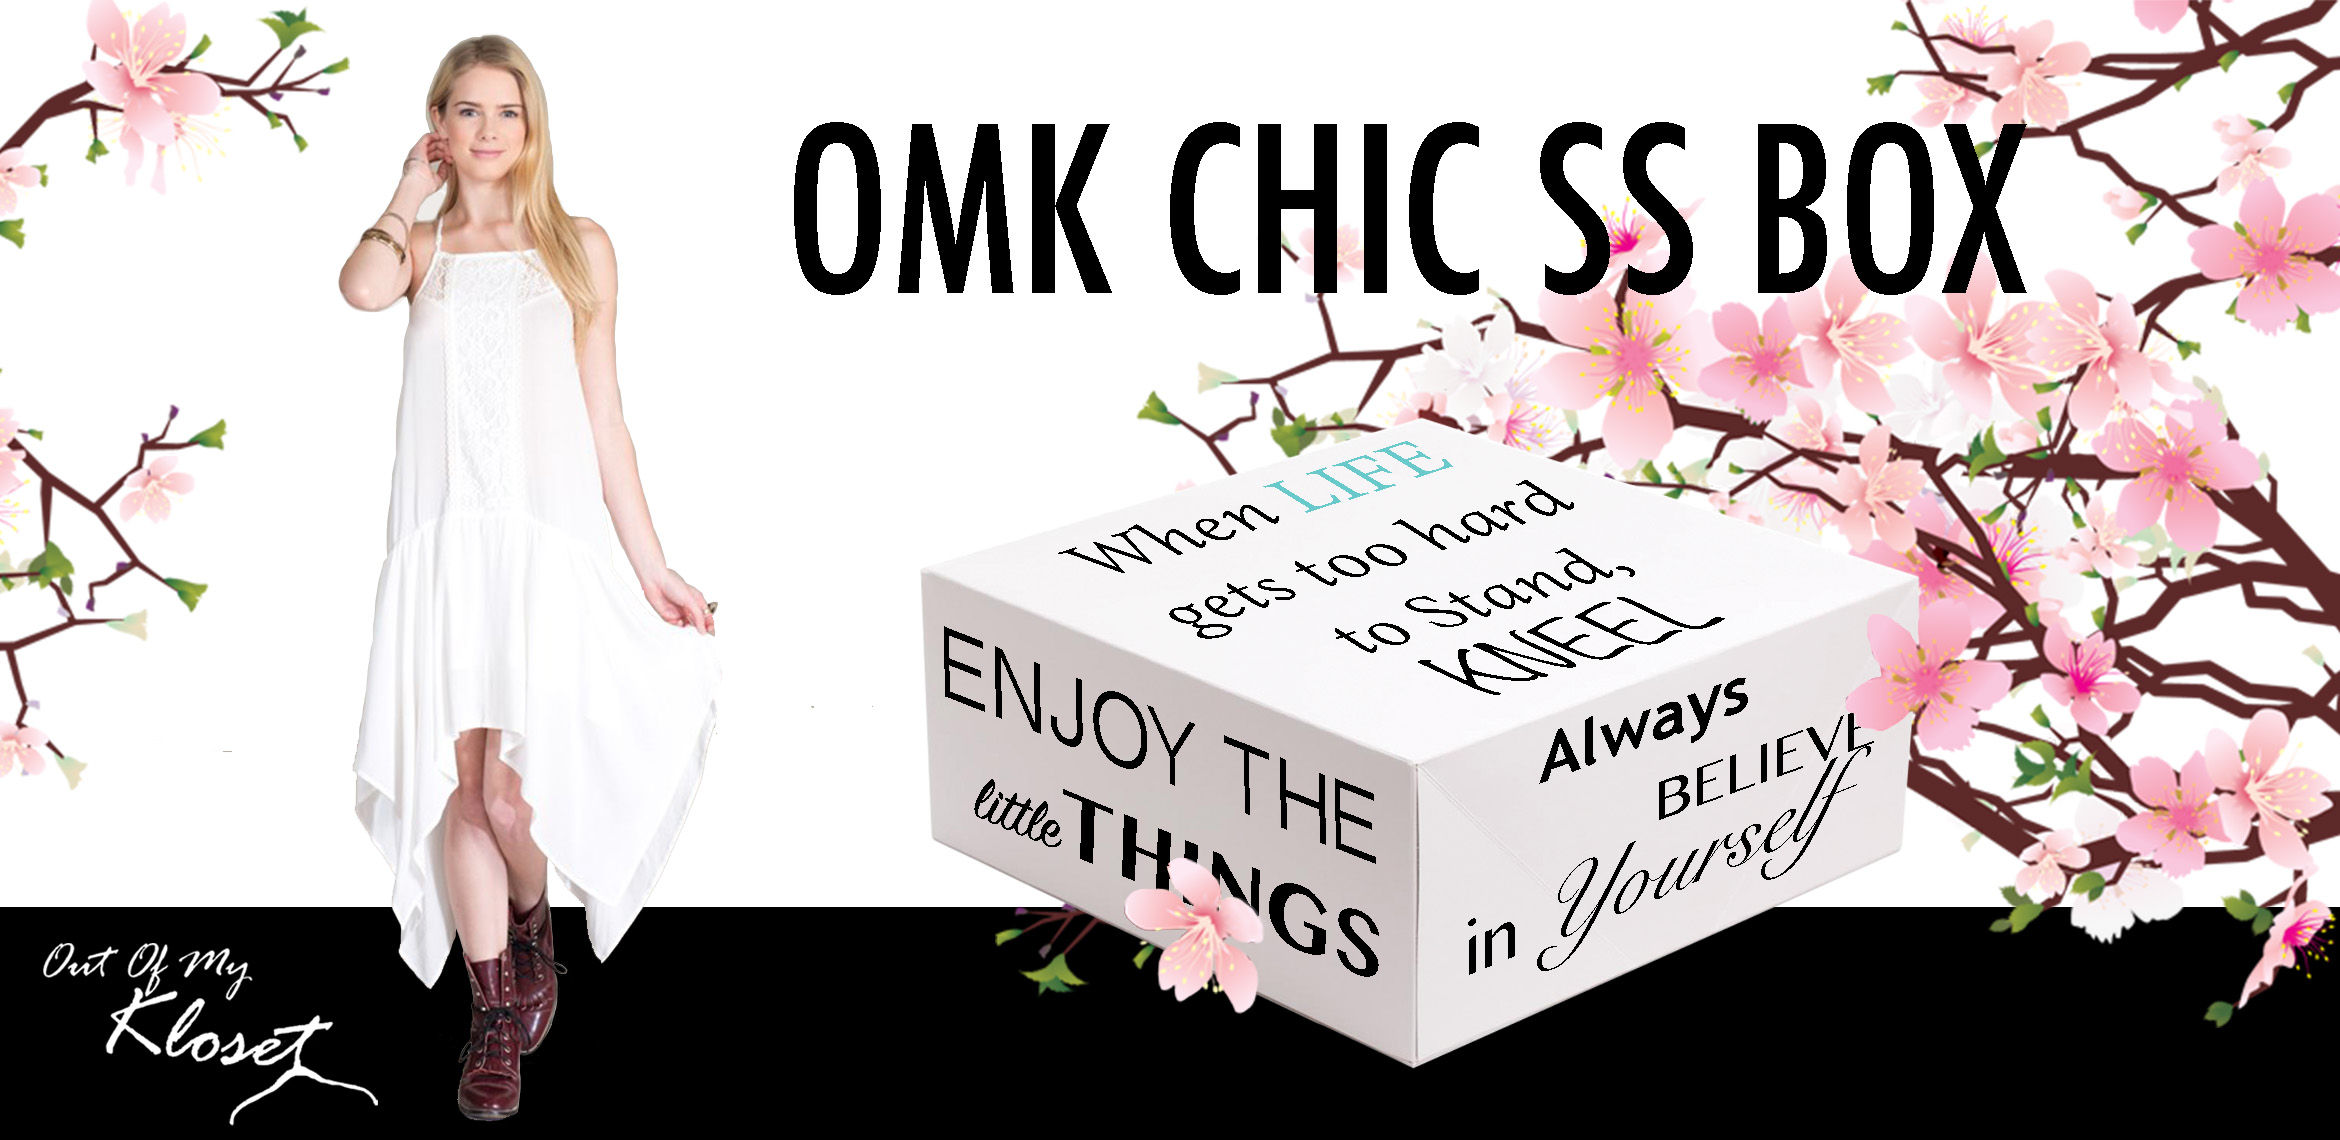 omk-chic-spring-box-copy-copy.jpg